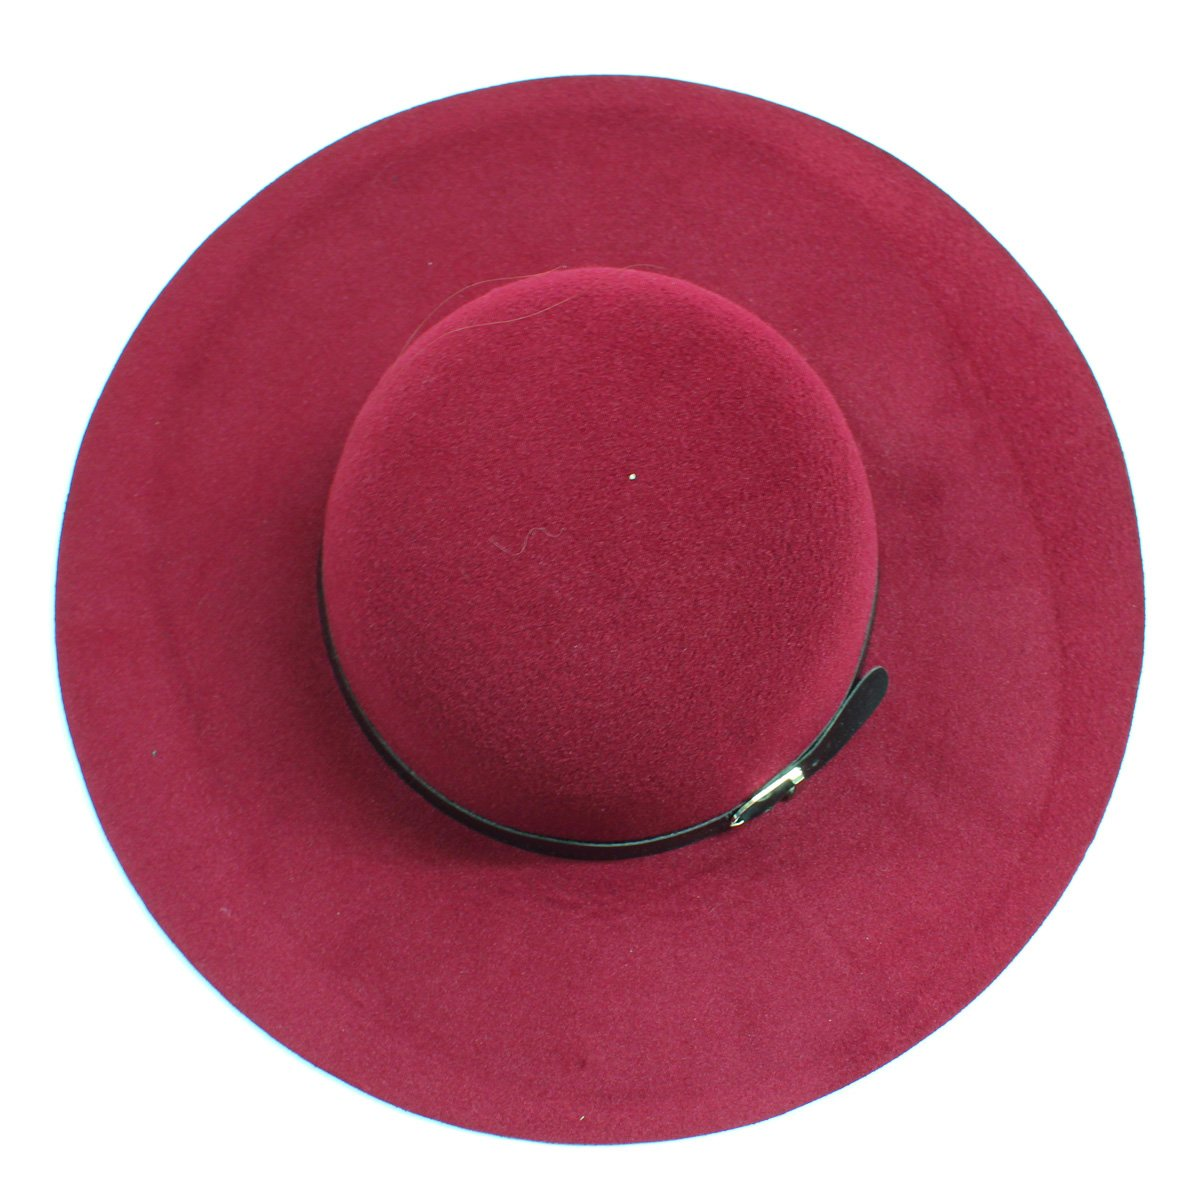 Womens Wide Brim Floppy Felt Hat with Buckle - LoveSylvester